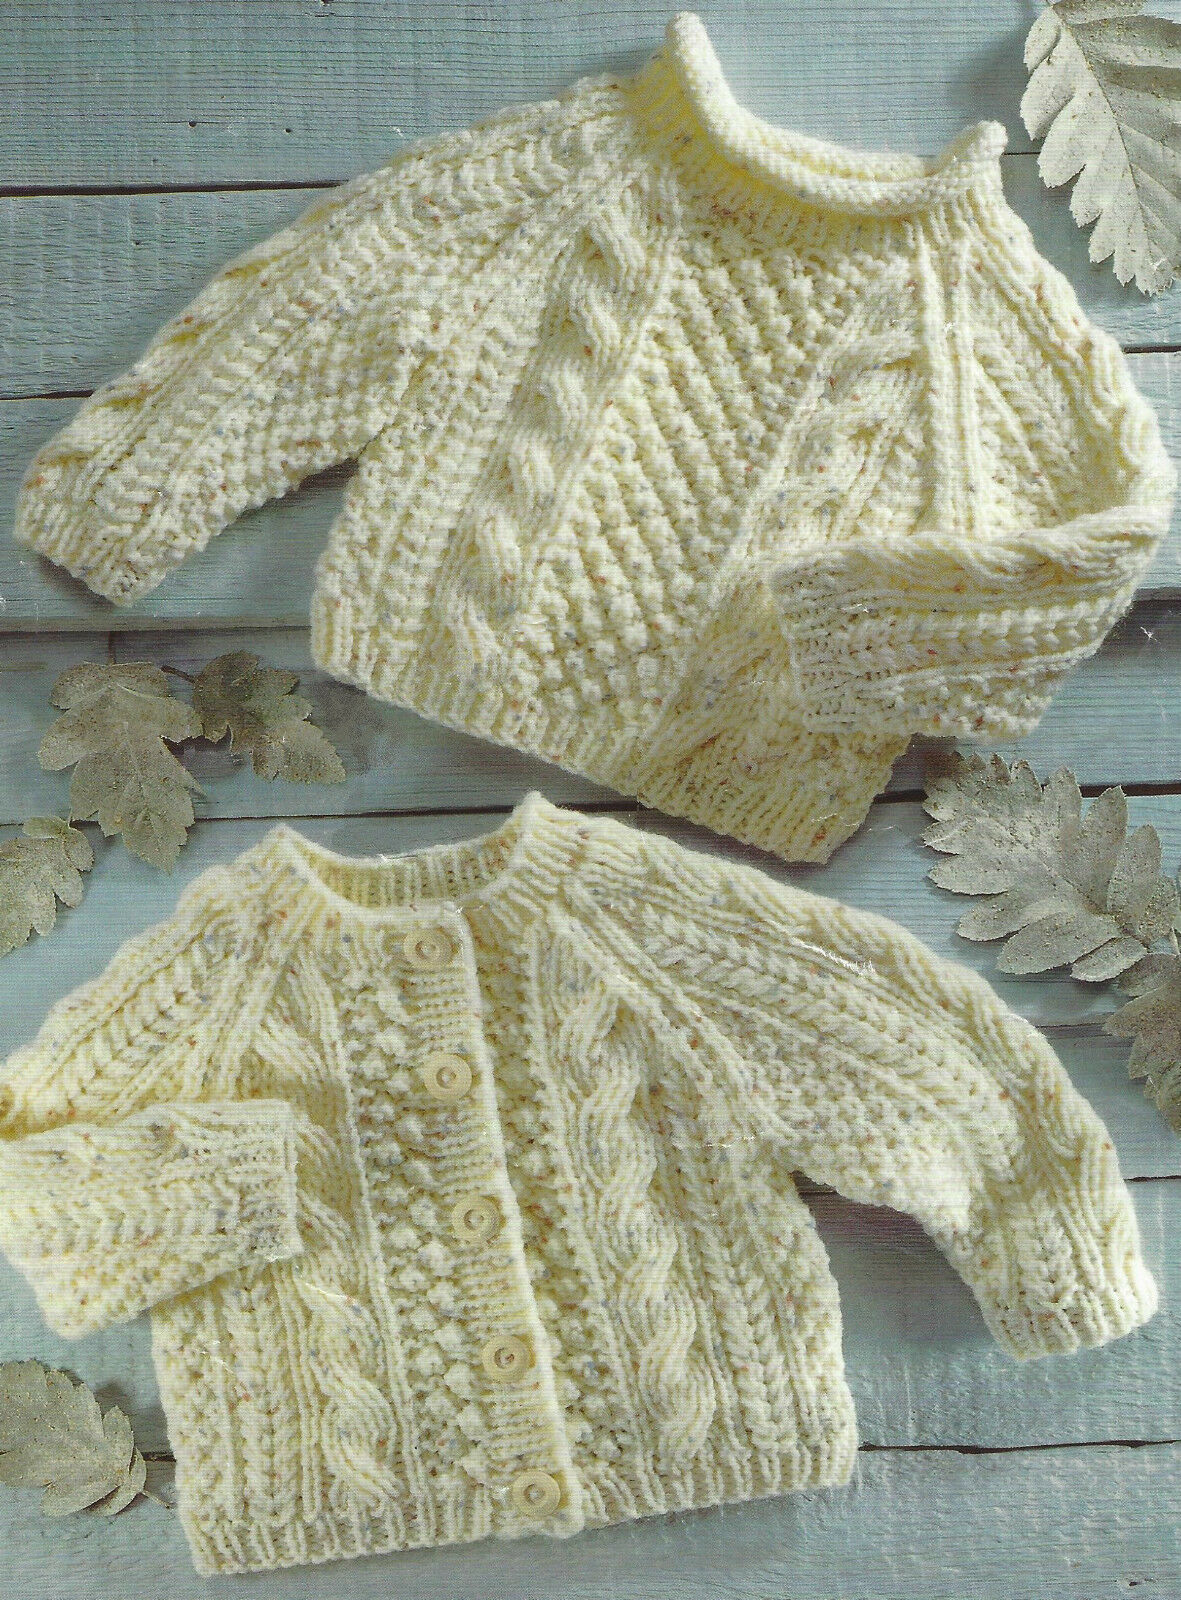 Aran Childrens Knitting Patterns : Aran Knitting Pattern Cardigan Sweater with cables Baby Girls Boys 16-26